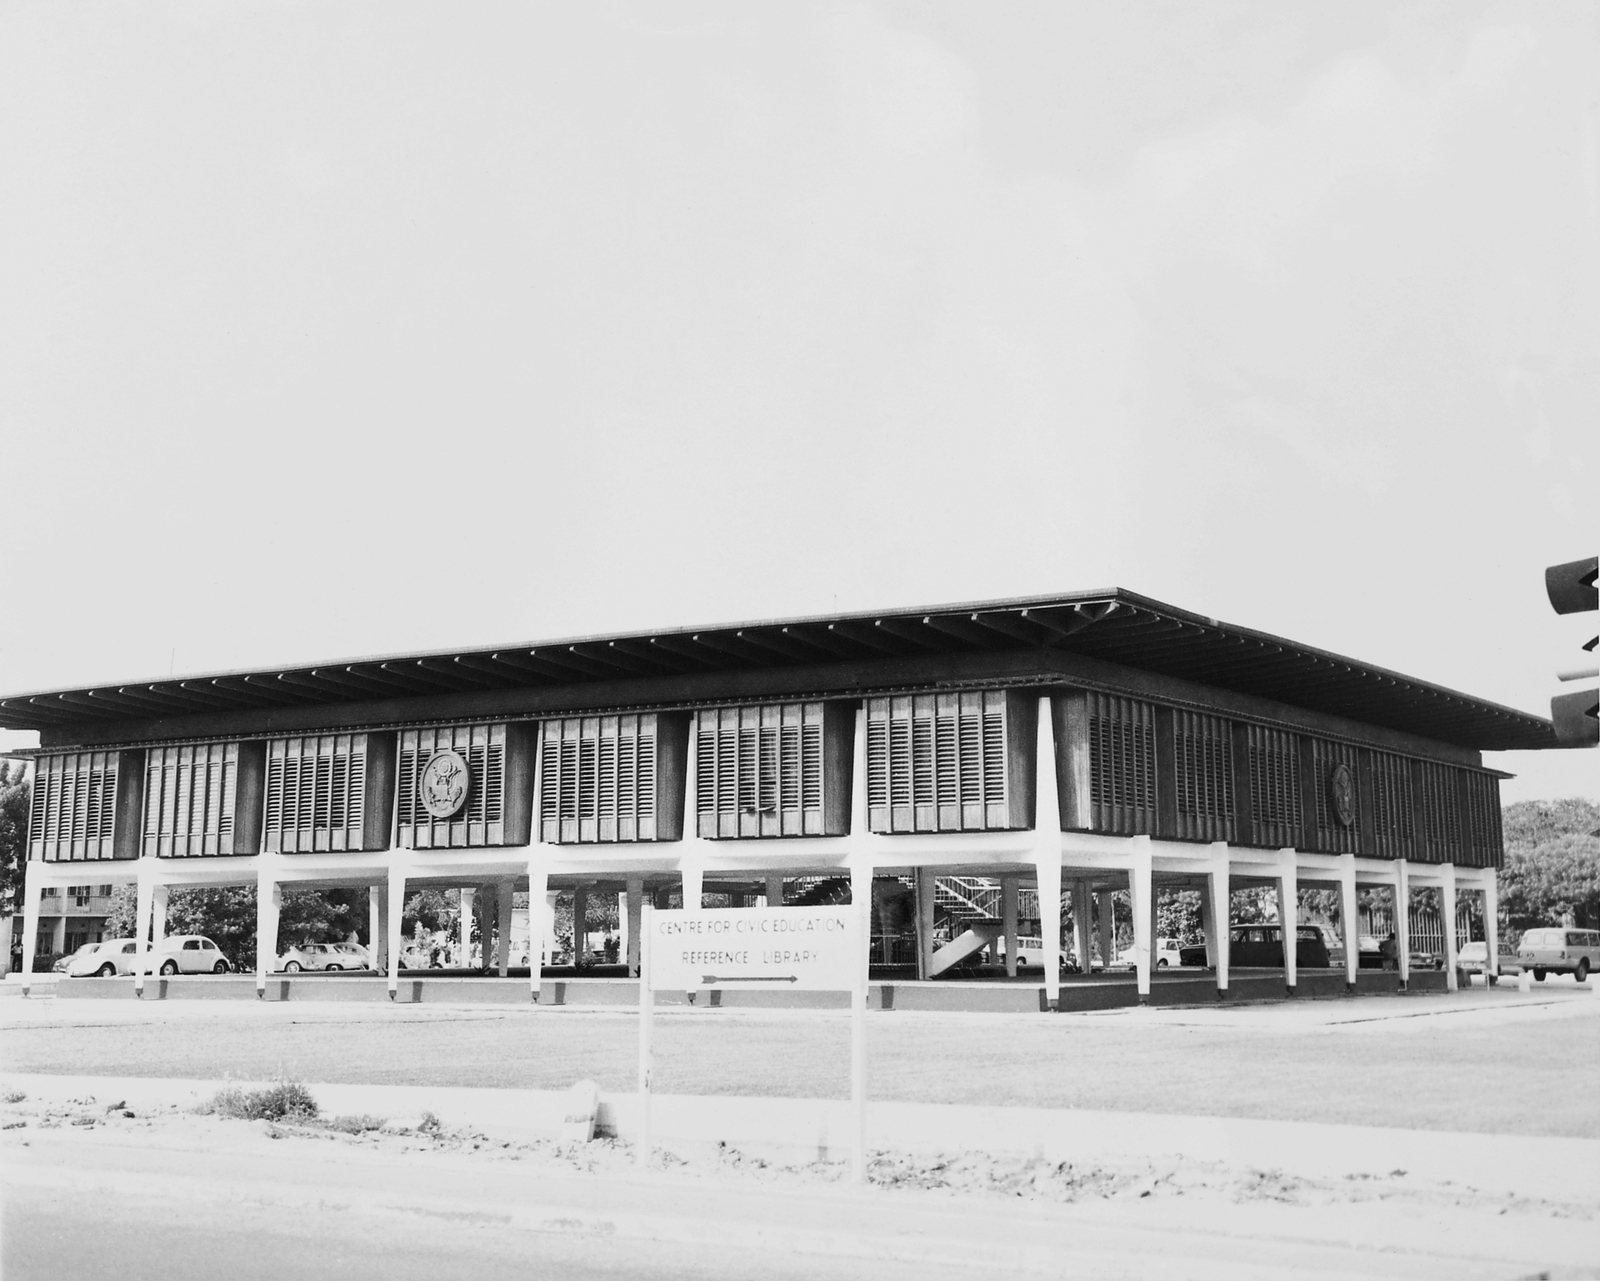 Accra - Chancery Office Building - 1964